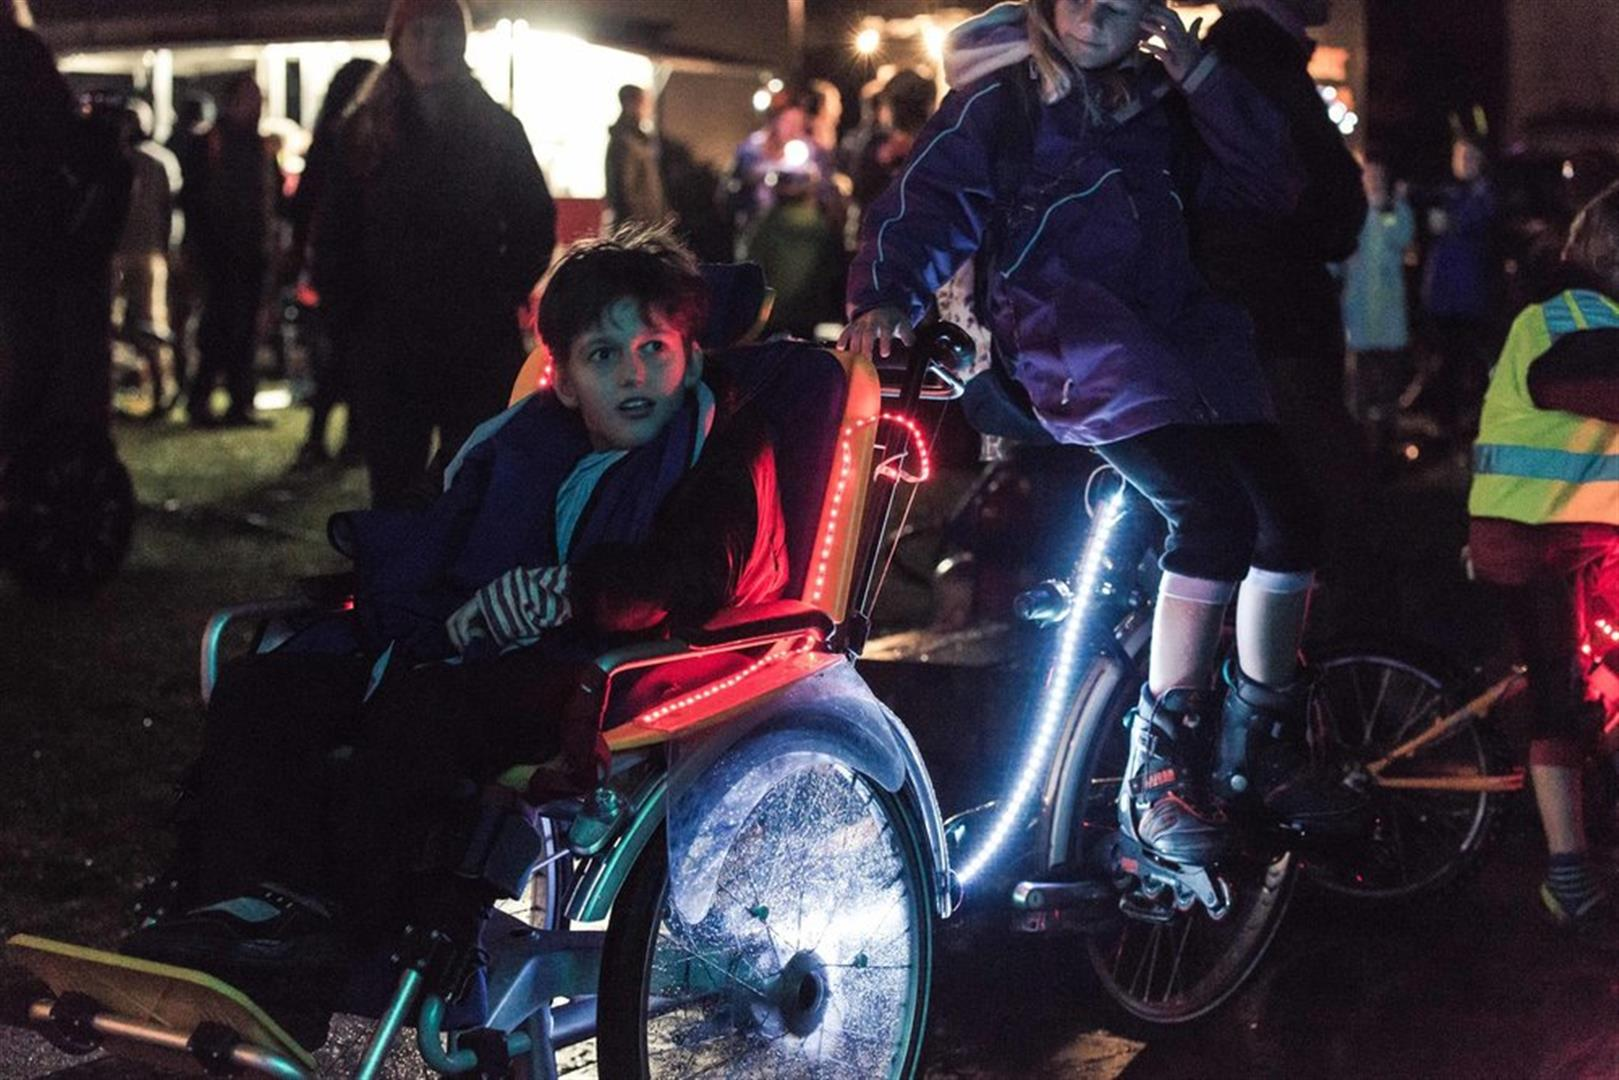 An all-wheels event for the whole whānau -